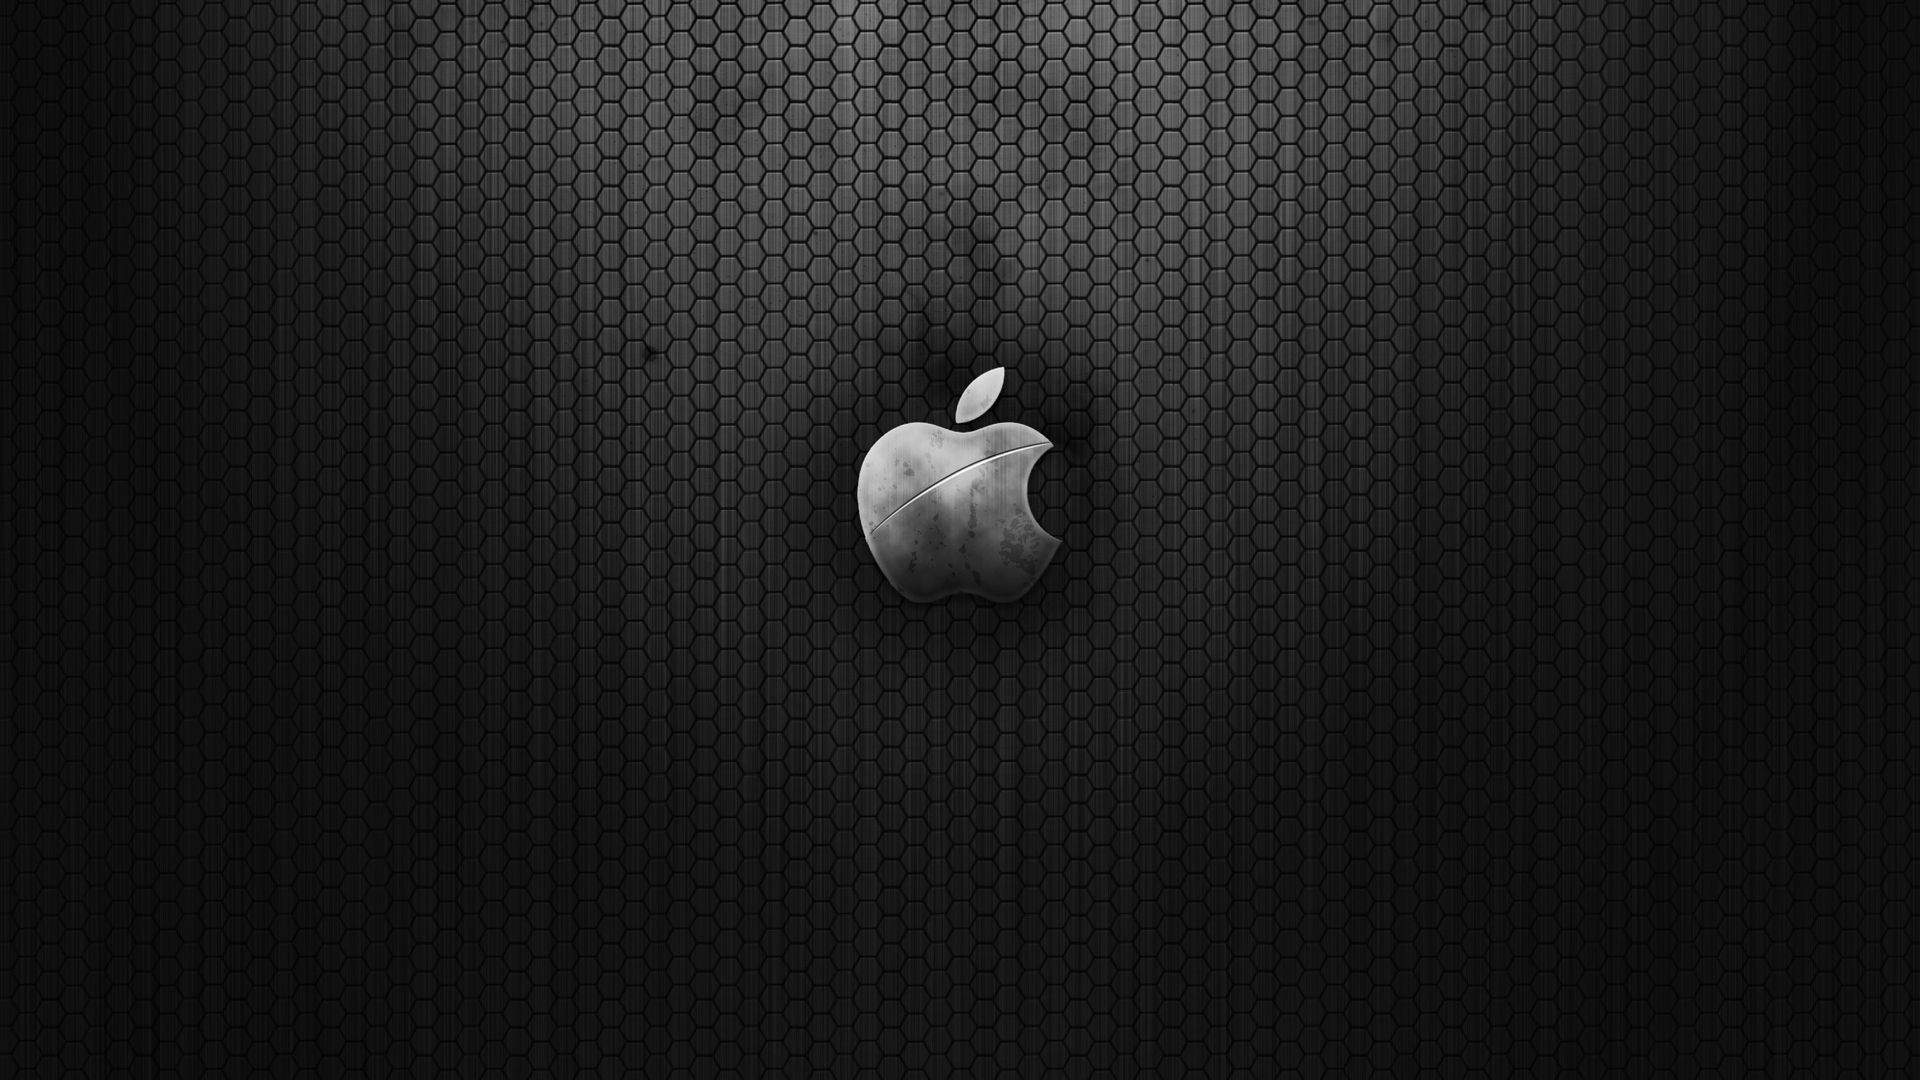 Apple HD Wallpapers 1080p - Wallpaper Cave